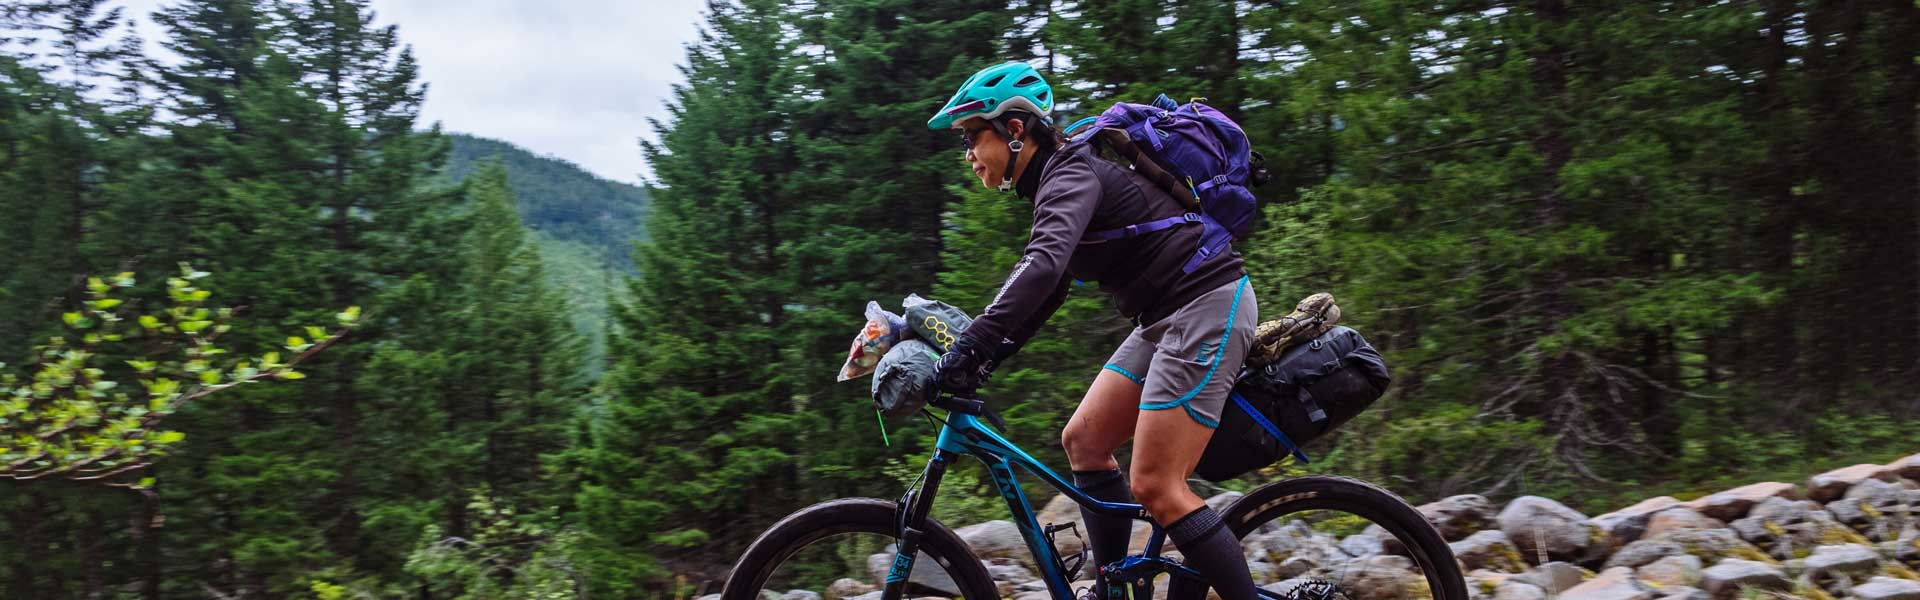 Best Gear for Bikepacking   Liv Cycling Official site